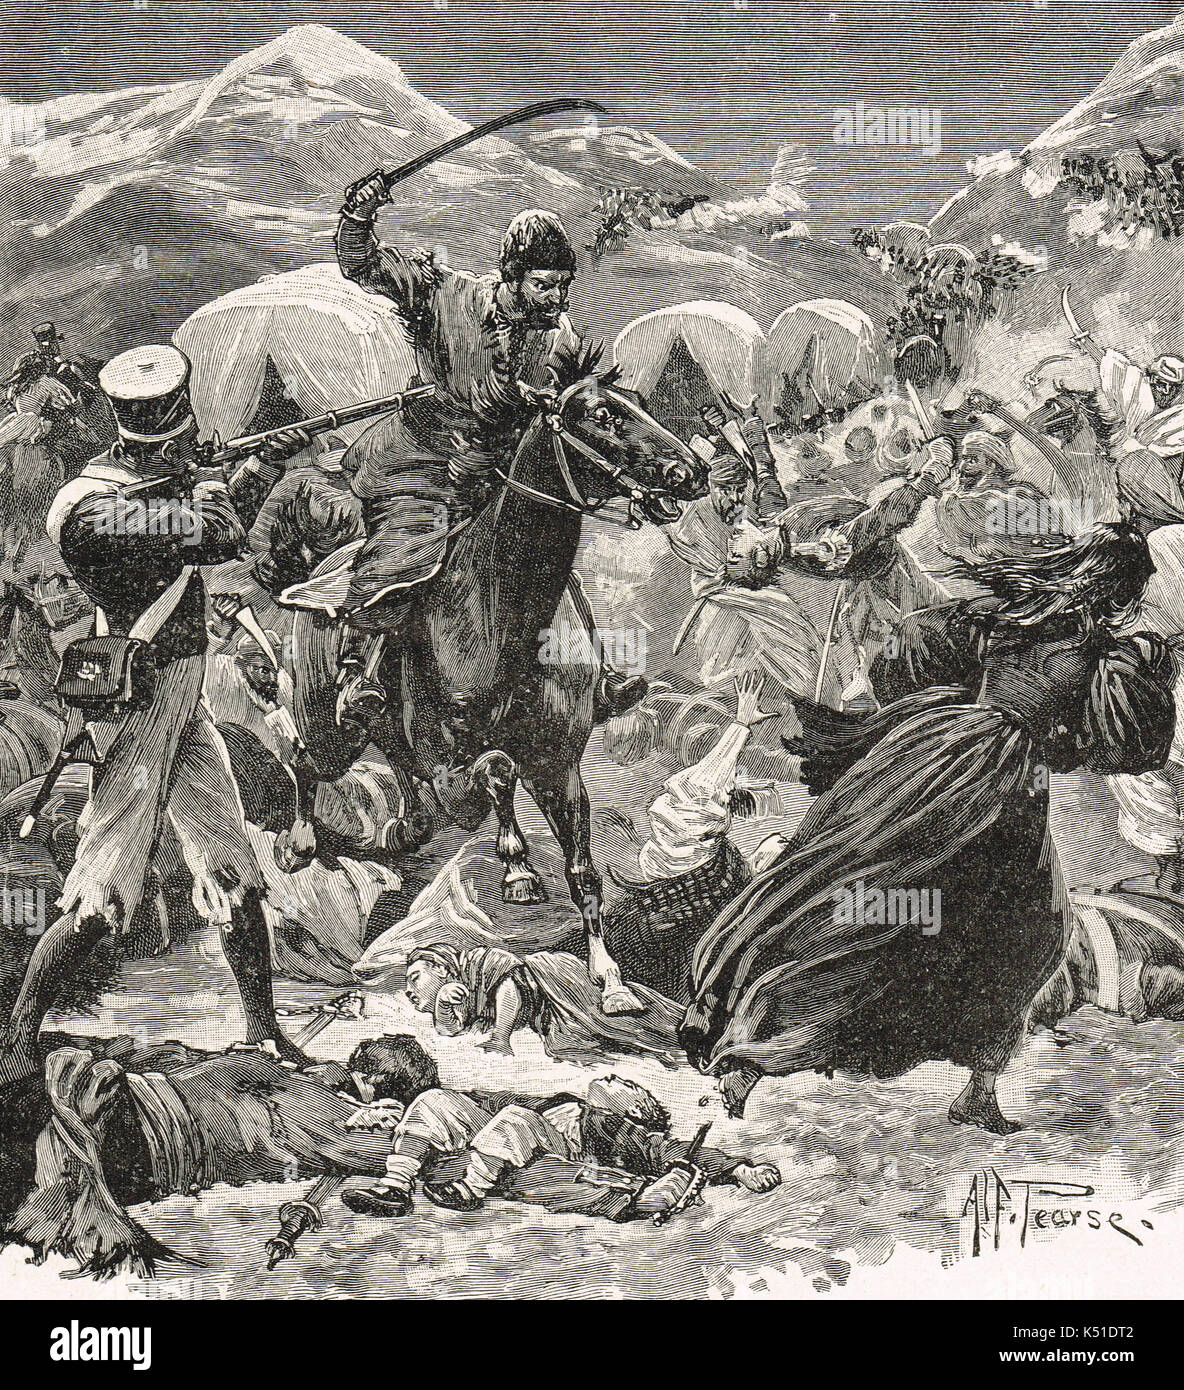 The retreat from Kabul in 1842 - Stock Image